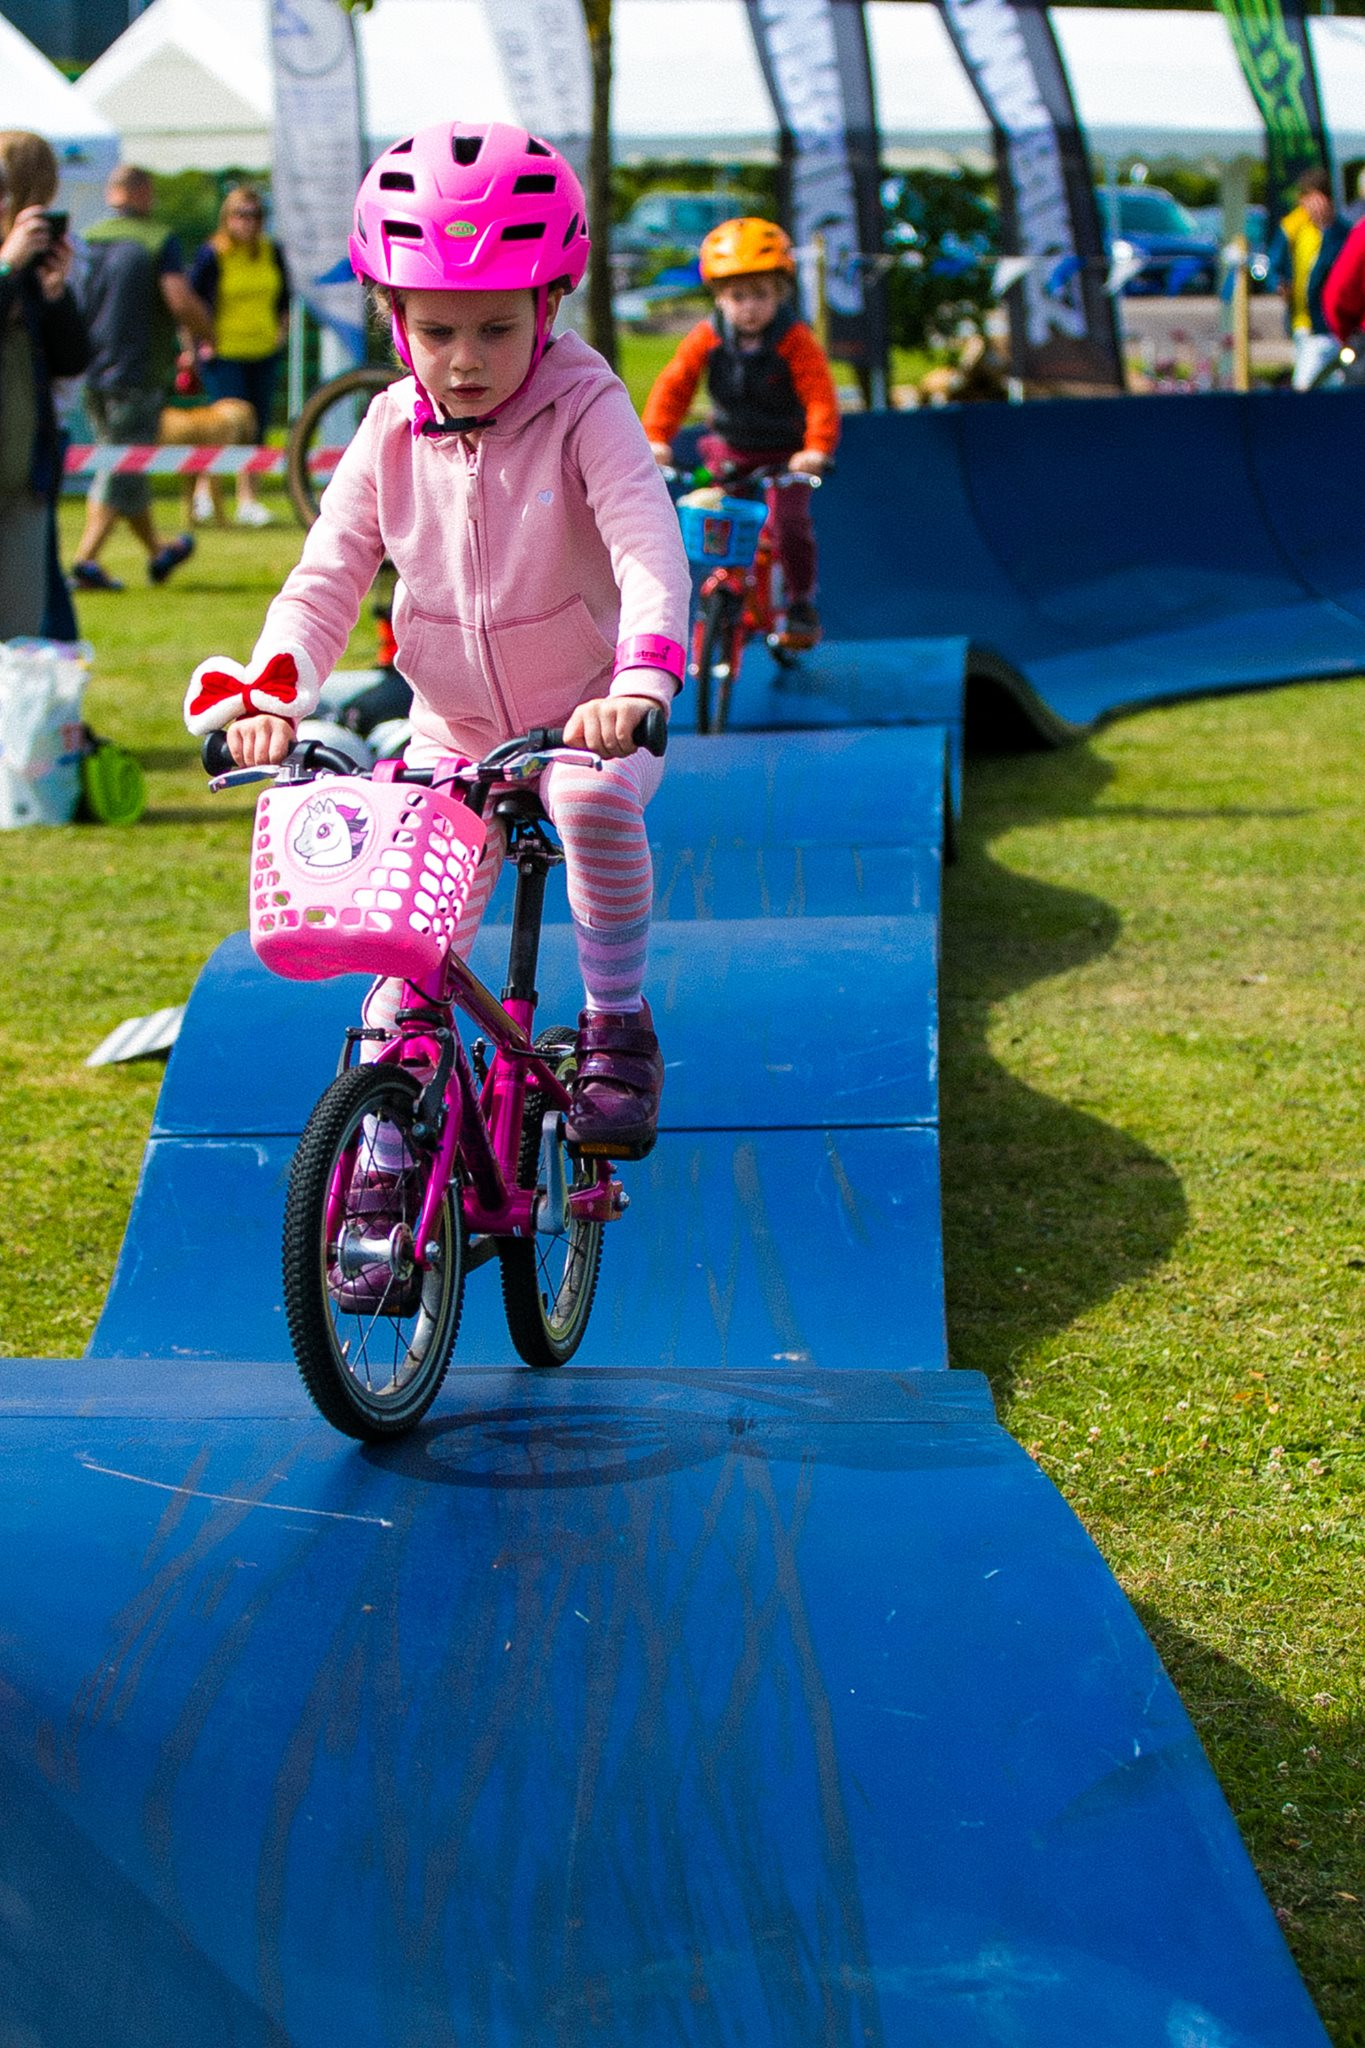 We're bringing an amazing kids pump track to our event this year. Open to everyone free of charge and we'll also have demo bikes for kids and adults available.